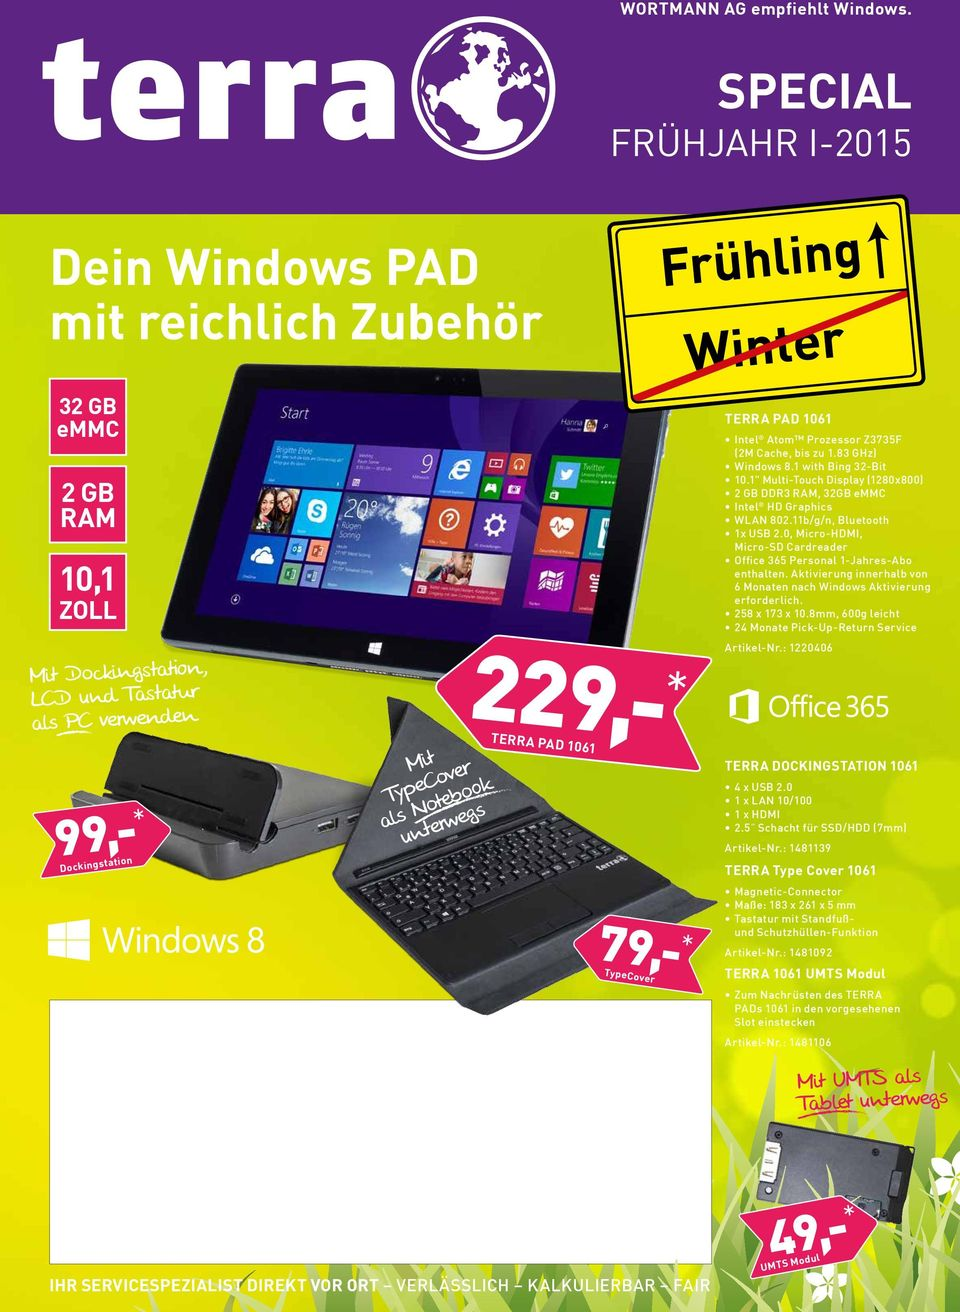 "1"" Multi-Touch Display (1280x800) 2 GB DDR3, 32GB emmc WLAN 802.11b/g/n, Bluetooth 1x 2.0, Micro-HDMI, Micro-SD Cardreader Office 365 Personal 1-Jahres-Abo enthalten."